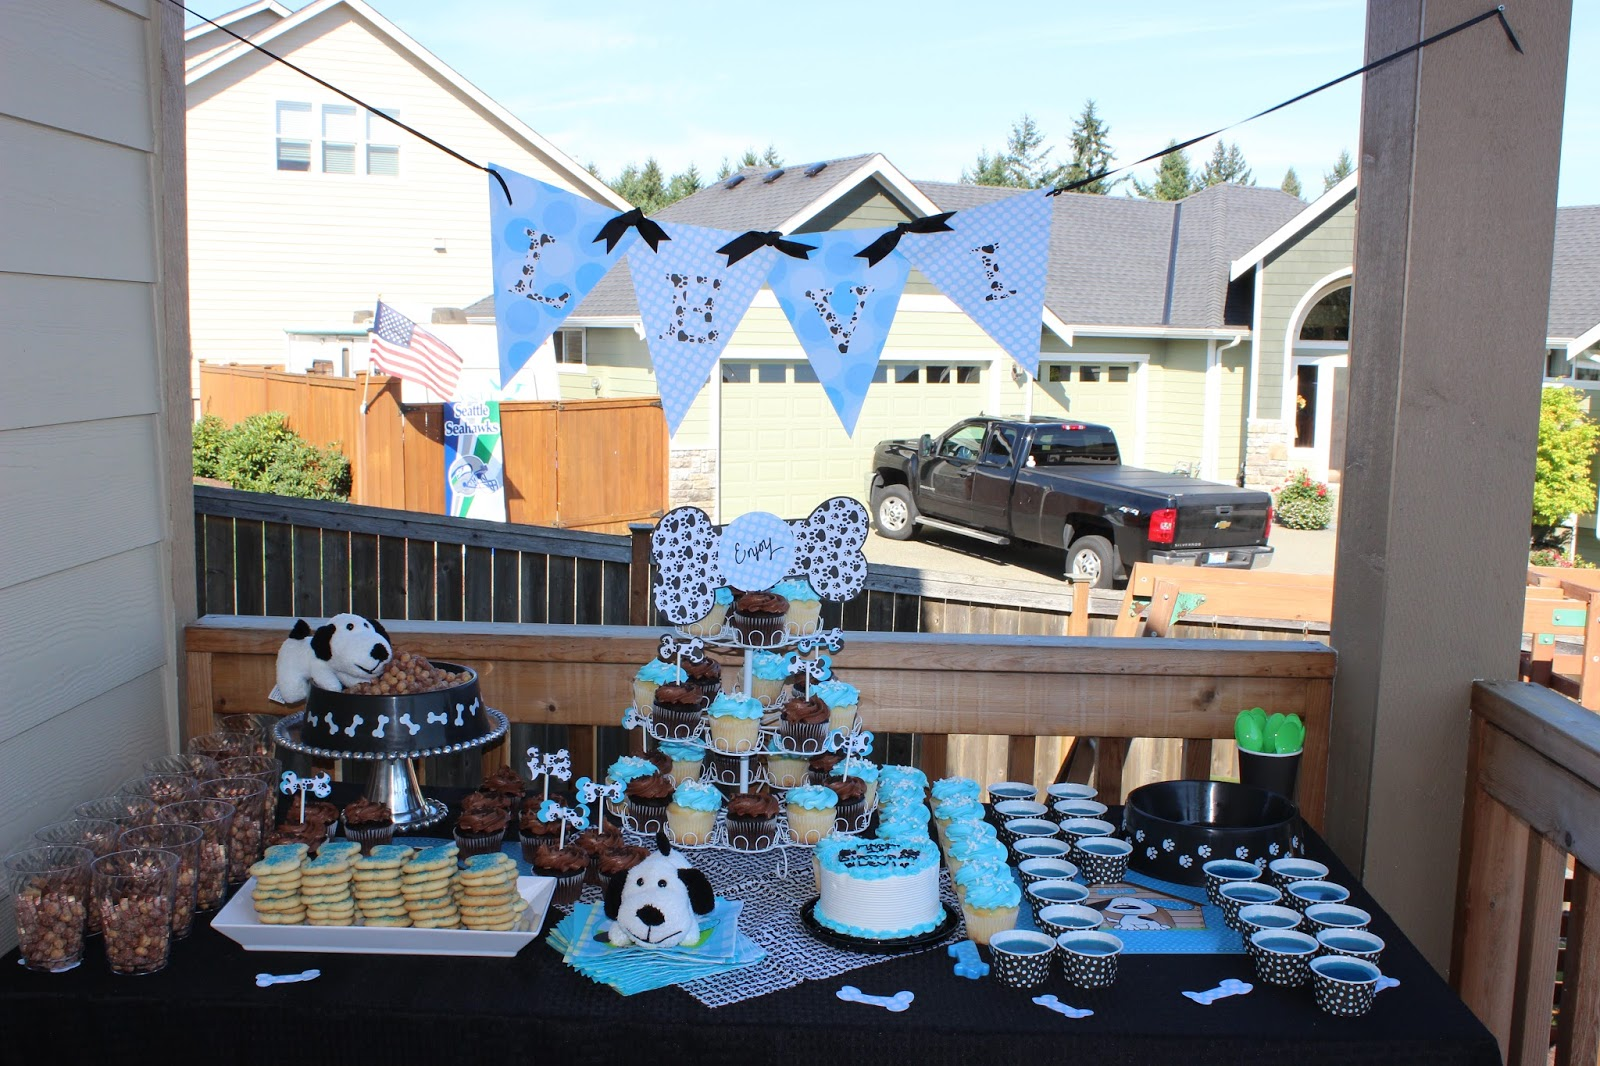 93 Party Food Ideas For A 1 Year Old Boy Birthday Ideas For 2